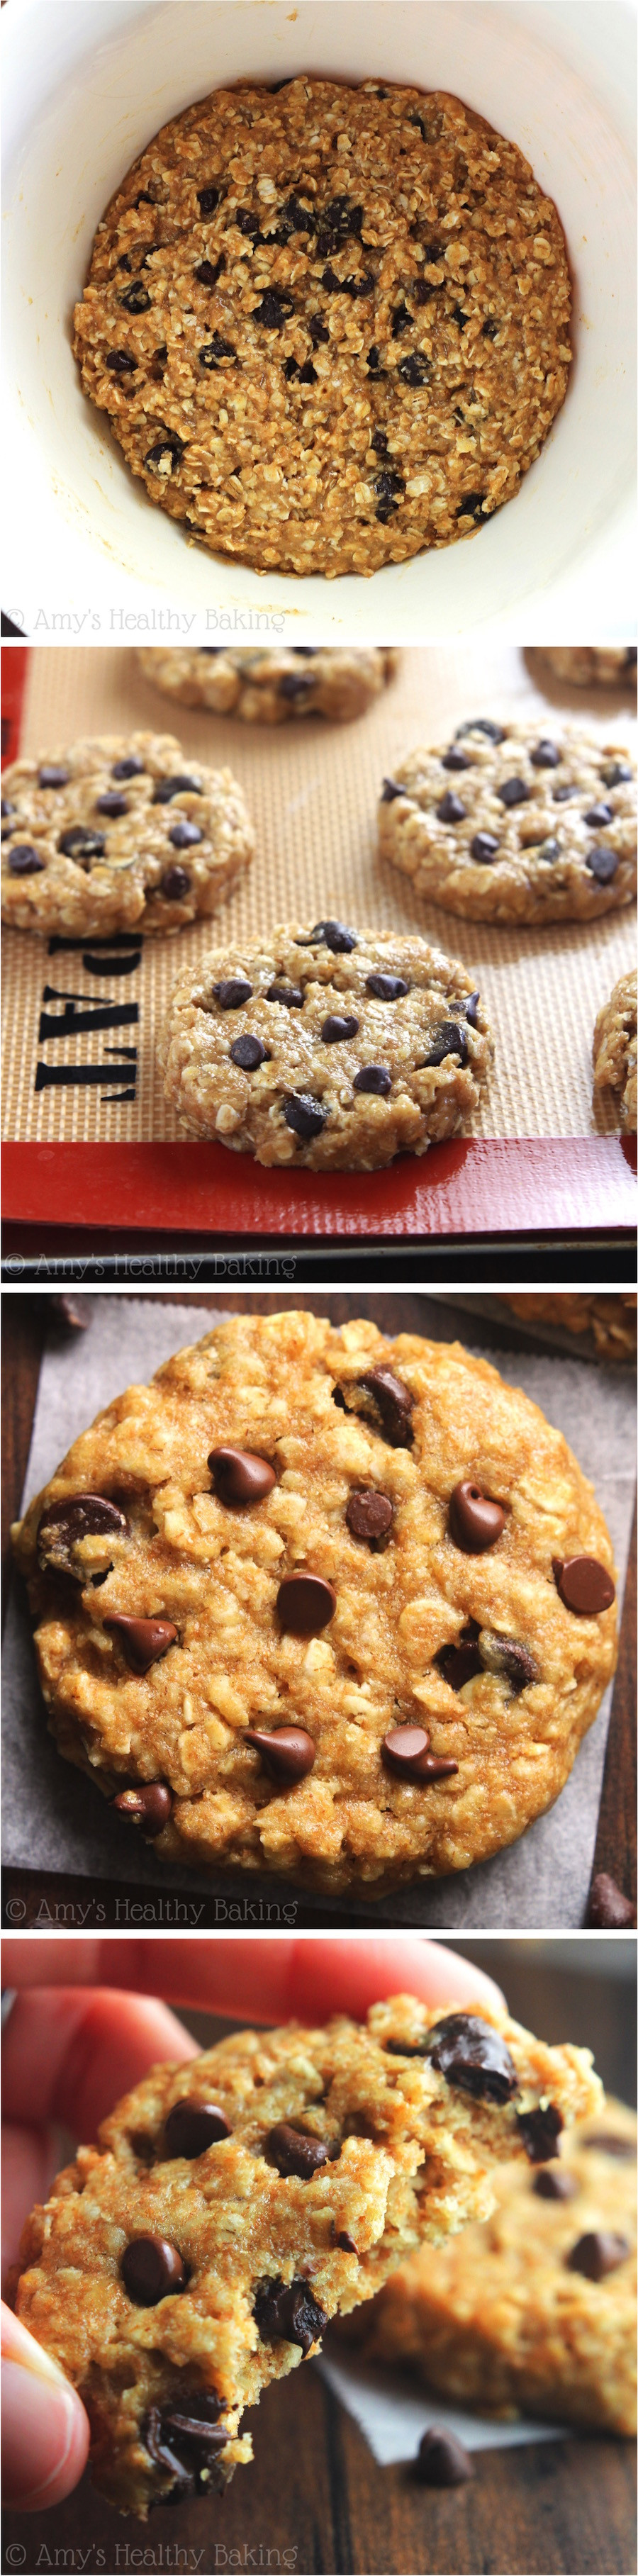 Healthy Peanut Butter Oatmeal Chocolate Chip Cookies  healthy peanut butter oatmeal cookies